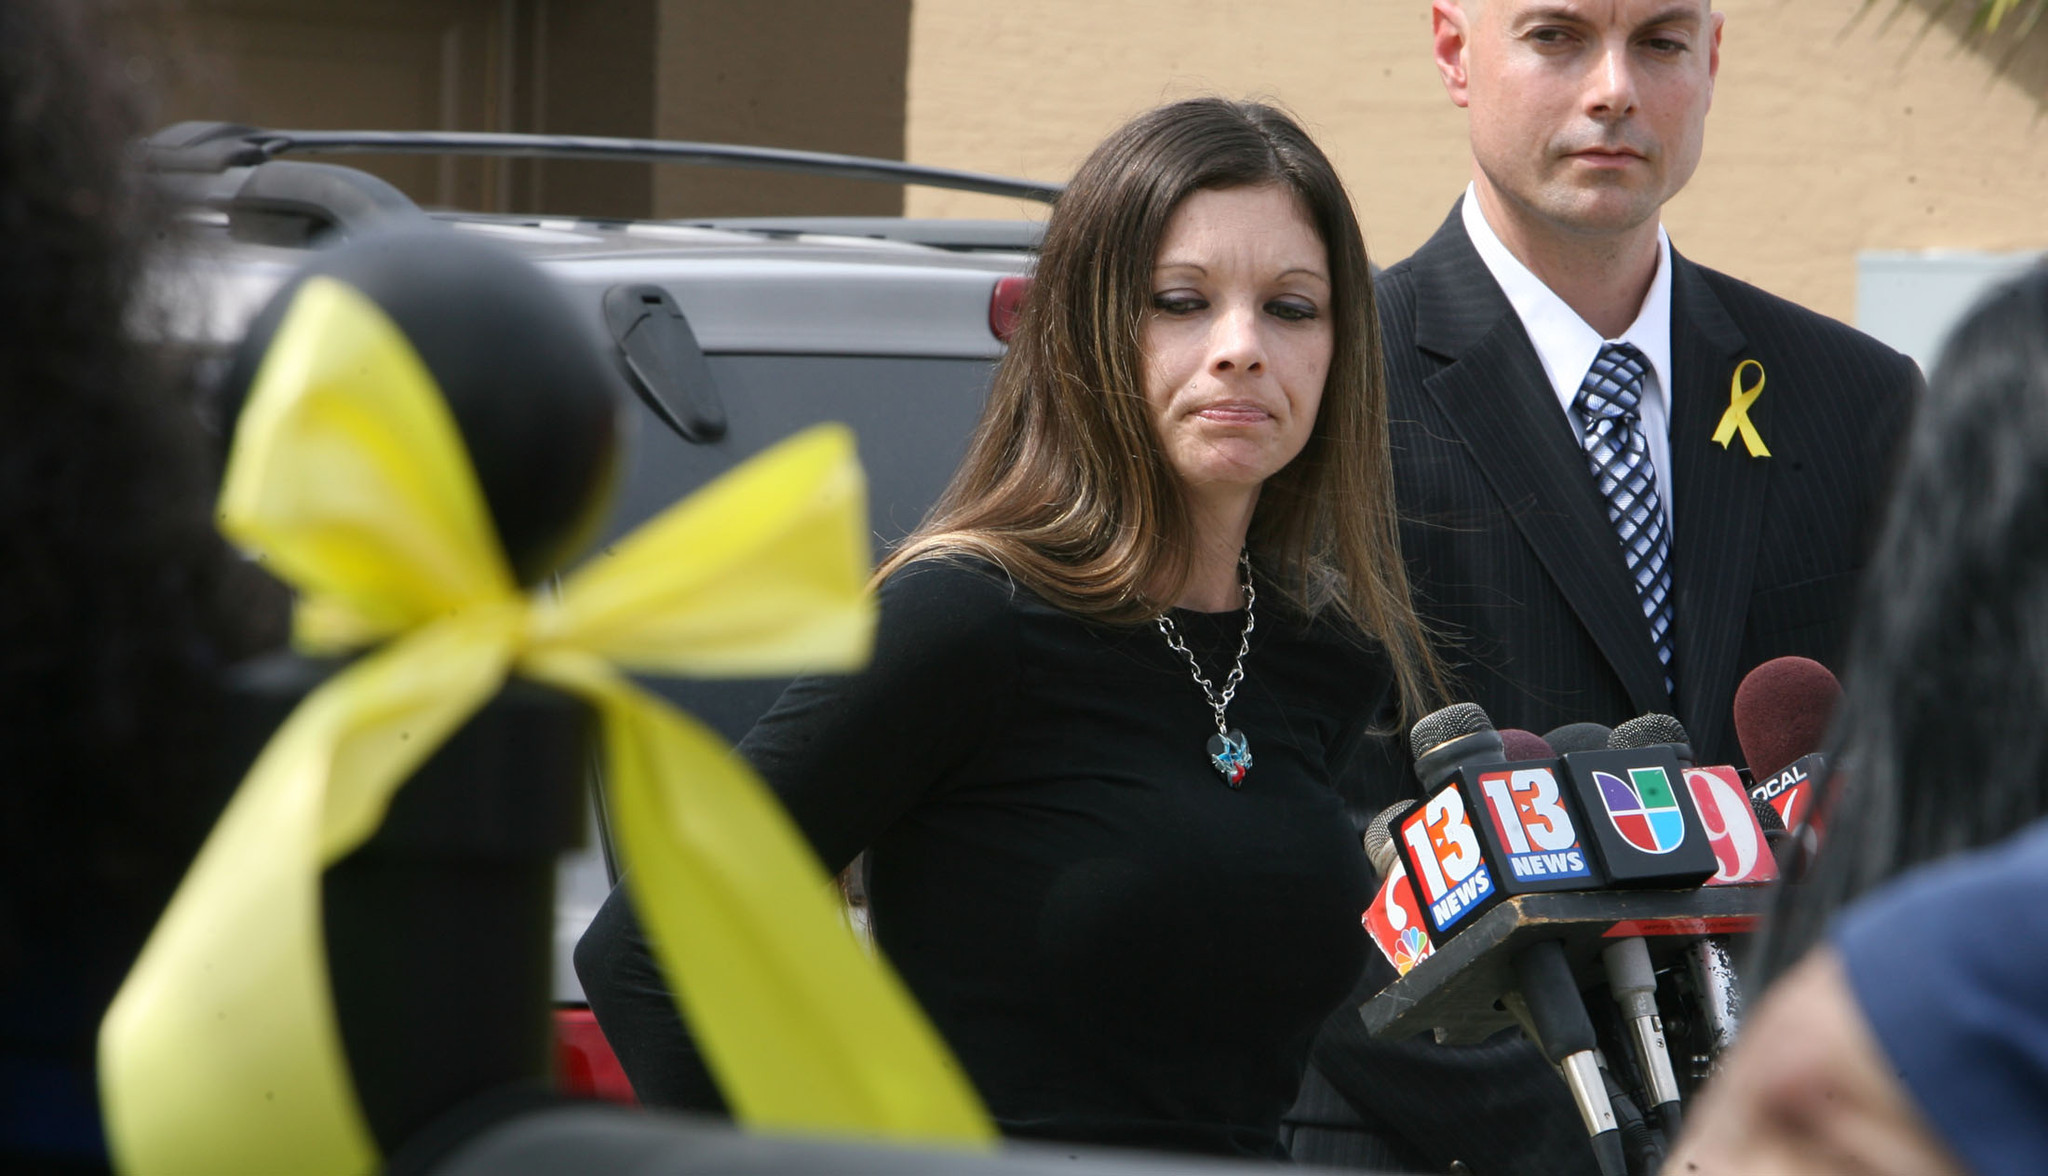 Tanya Perdomo, wife of missing firefighter Jerry Perdomo talks to the media as a yellow ribbon hangs from their mailbox at their family home.  Dave Williams, firefighter union representative stands by her side.